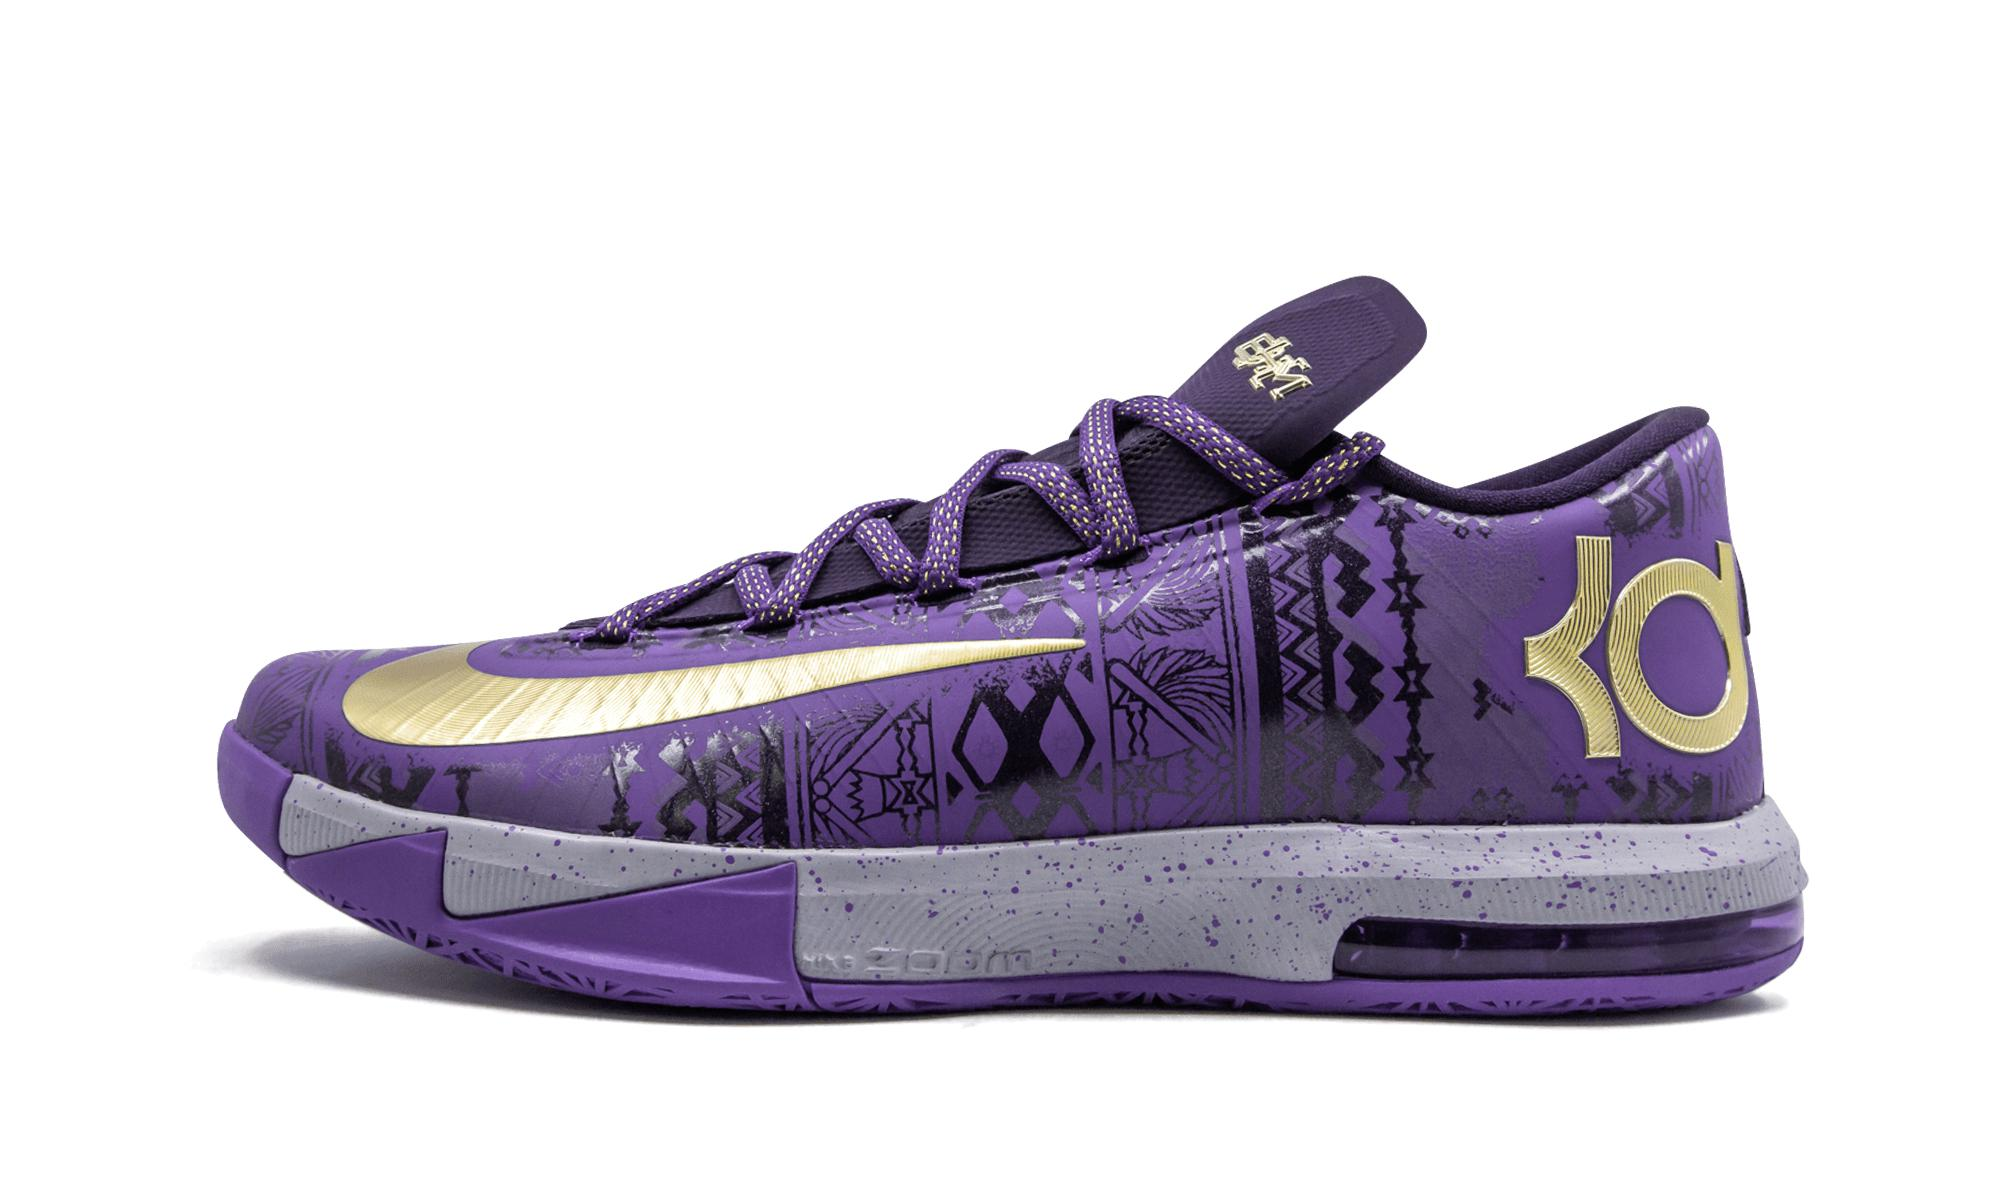 Lyst - Nike Kd 6 - Bhm in Blue for Men 888763ee6